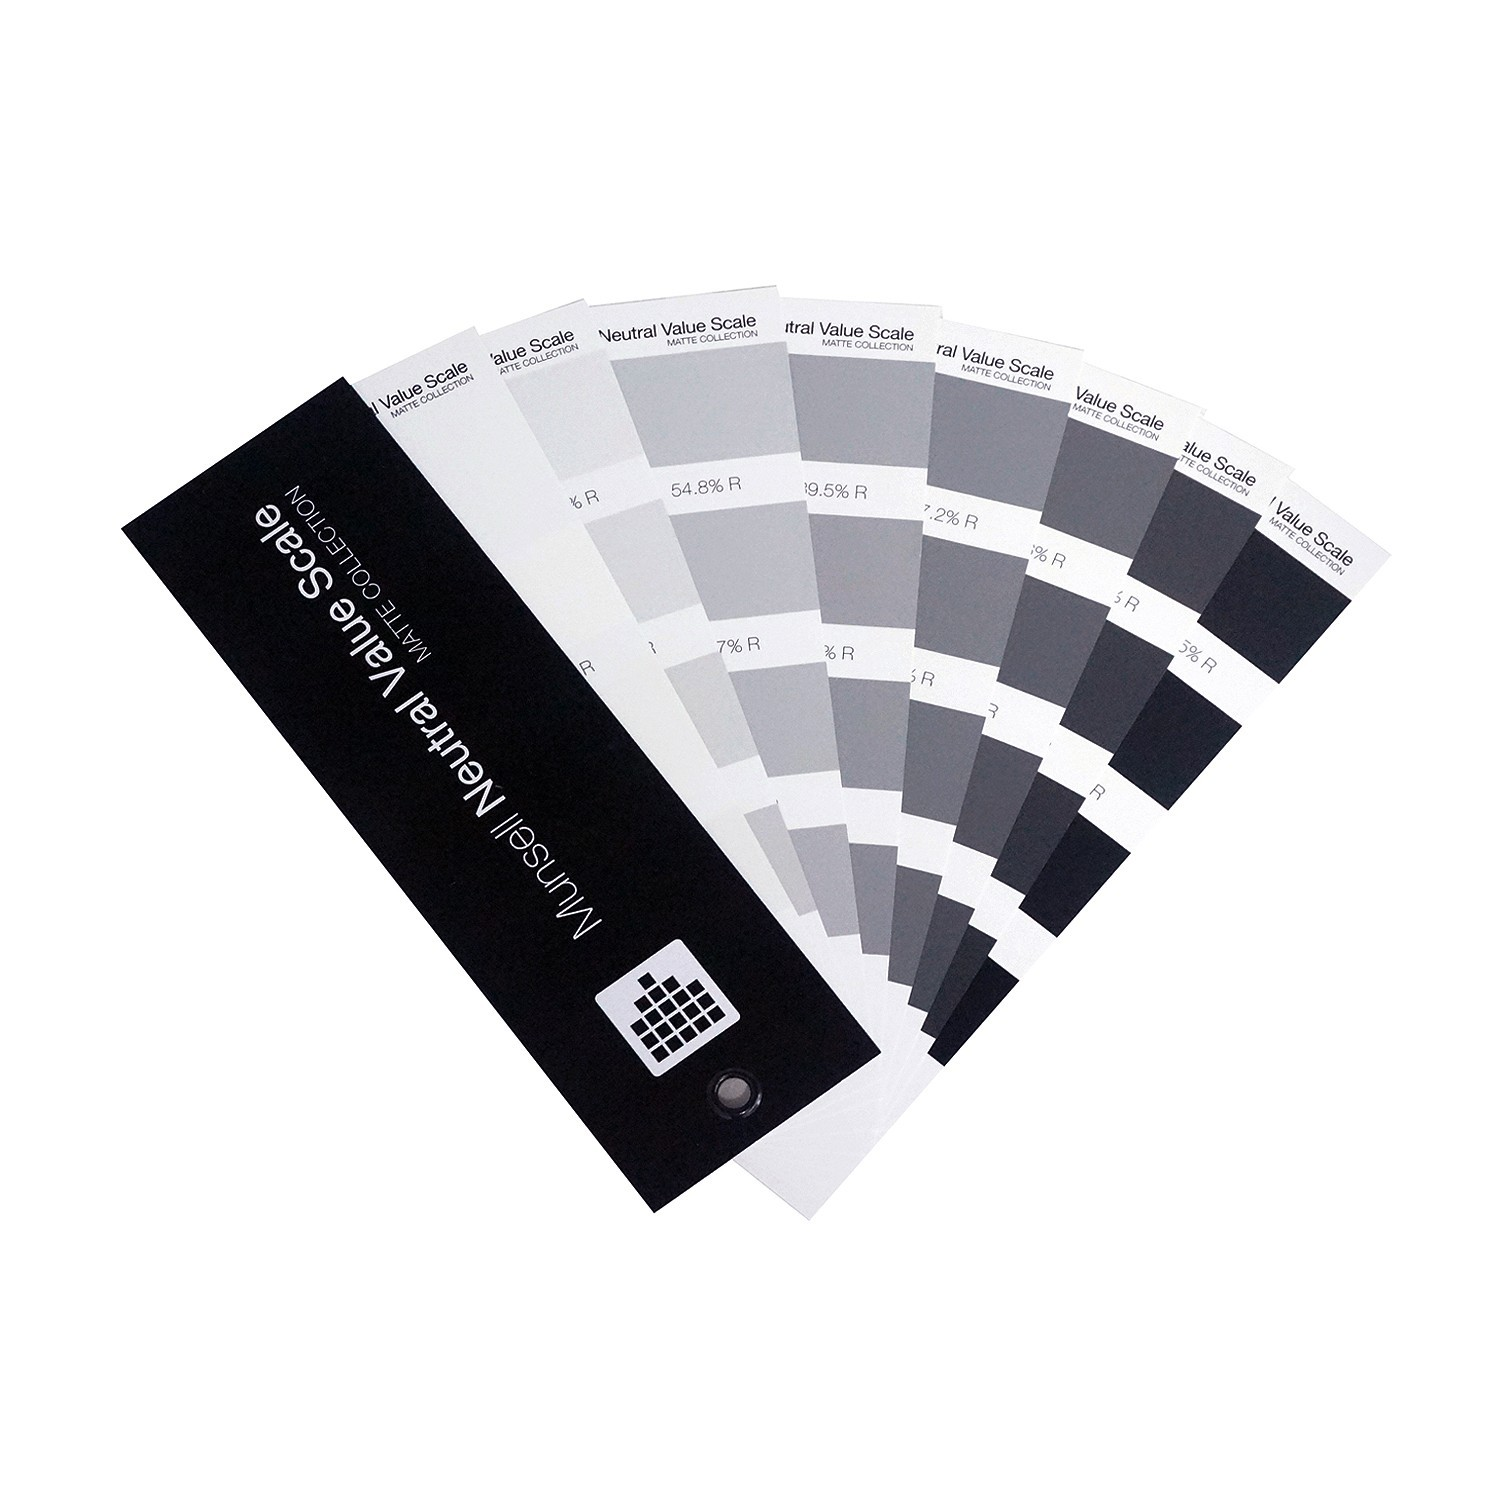 Munsell Neutral Value Scale – Glossy Finish M50130